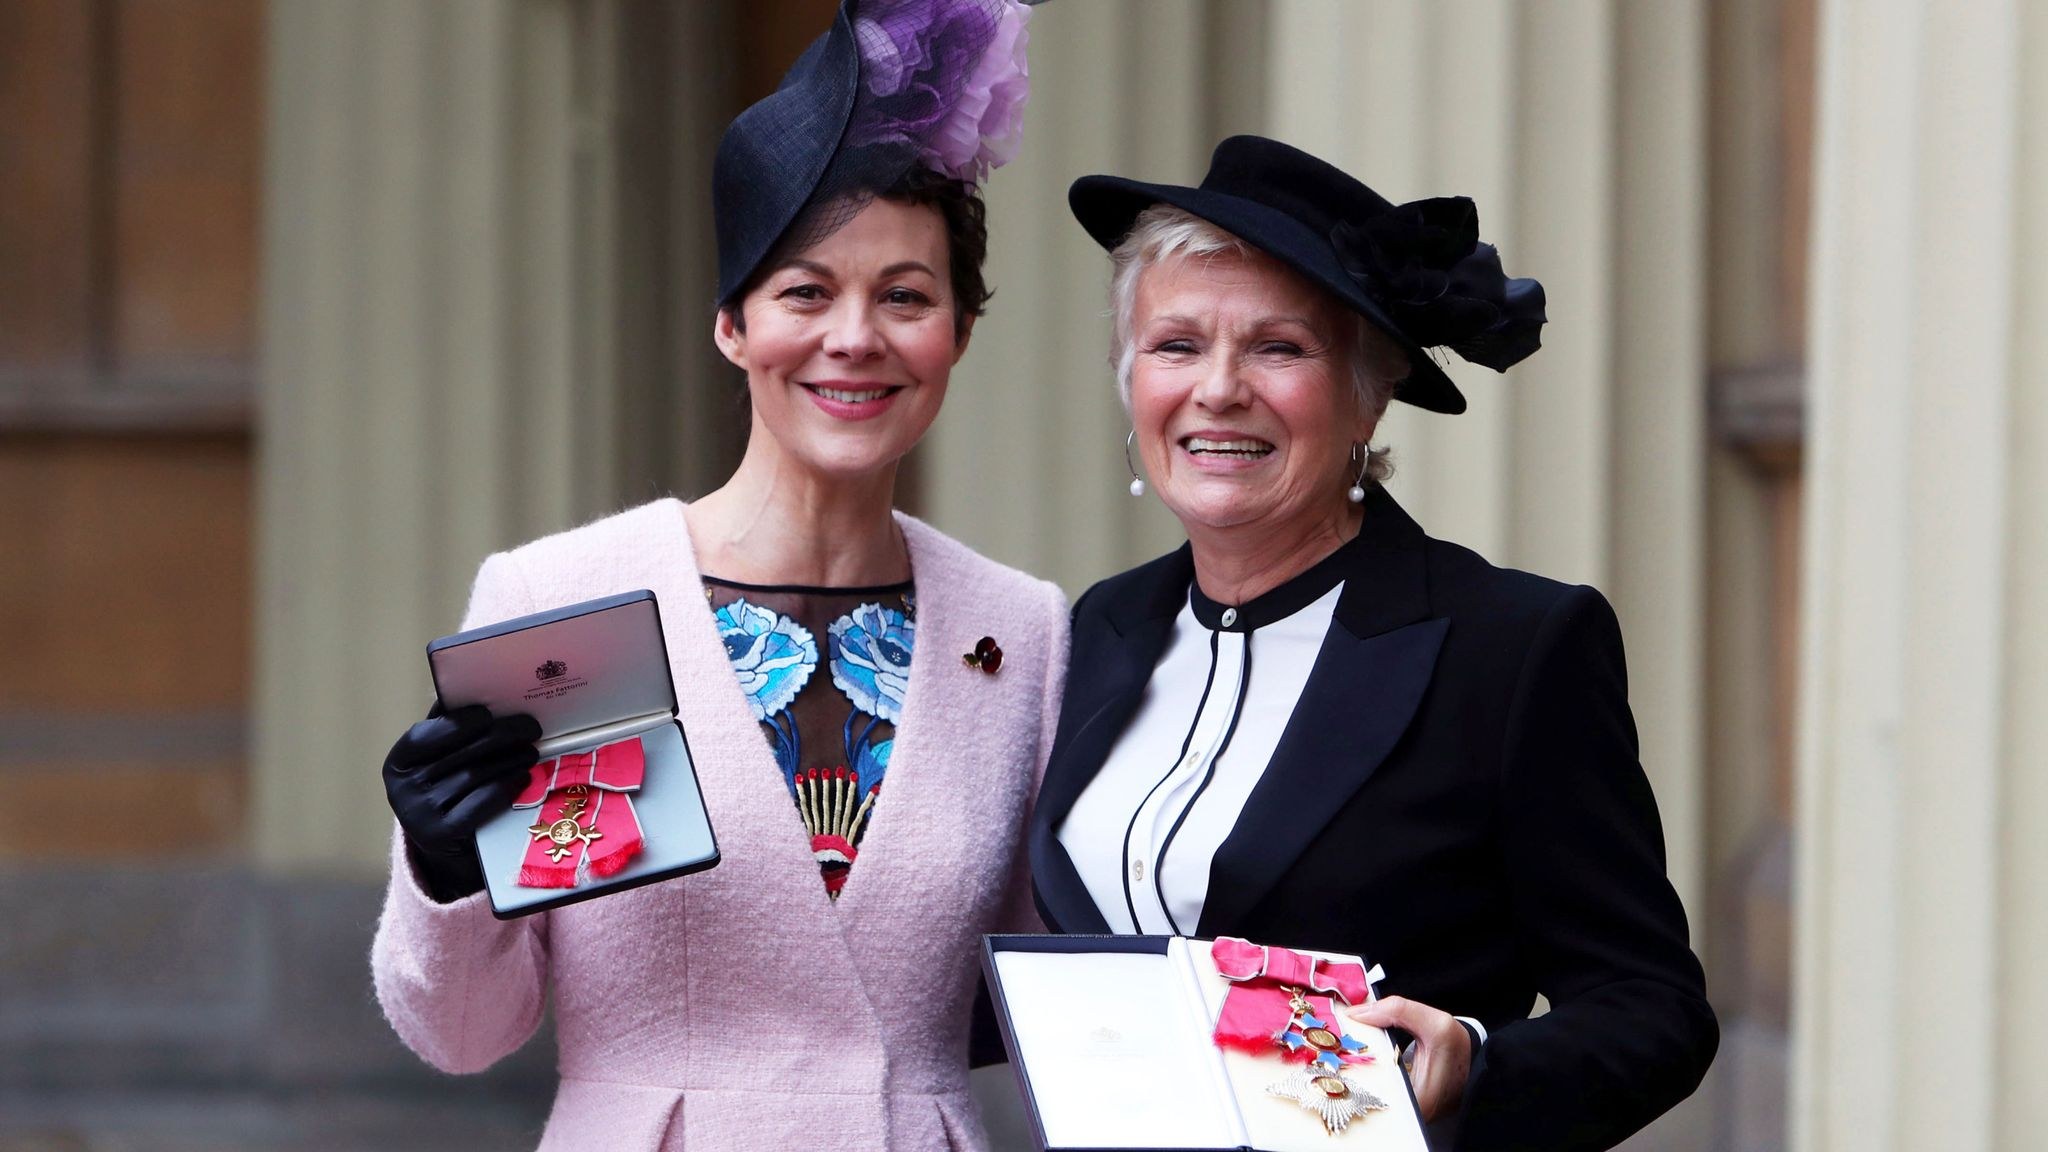 Dame Julie Walters (right) and Helen McCrory after they awarded a Damehood and OBE respectively by Queen Elizabeth II at an Investiture ceremony at Buckingham Palace, London. PRESS ASSOCIATION Photo. Picture date: Tuesday November 7, 2017. See PA story ROYAL Investiture. Photo credit should read: Steve Parsons/PA Wire